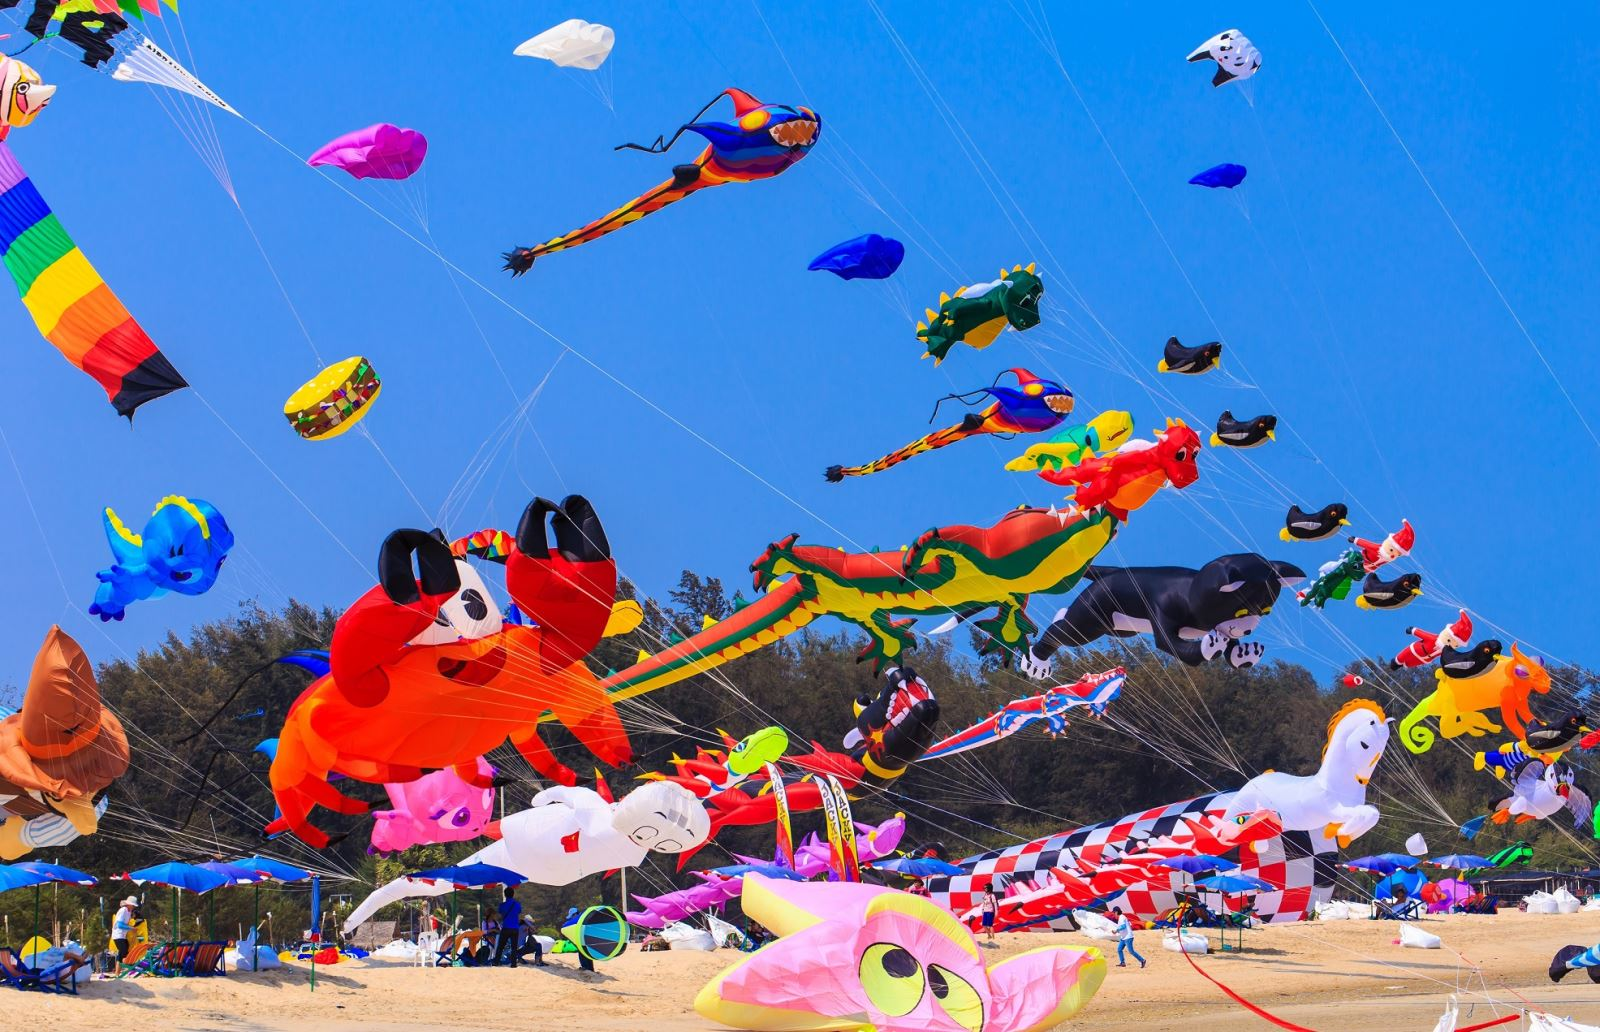 international-kite-fliers-showcase-skills-dubai-international-kite-fest-1499